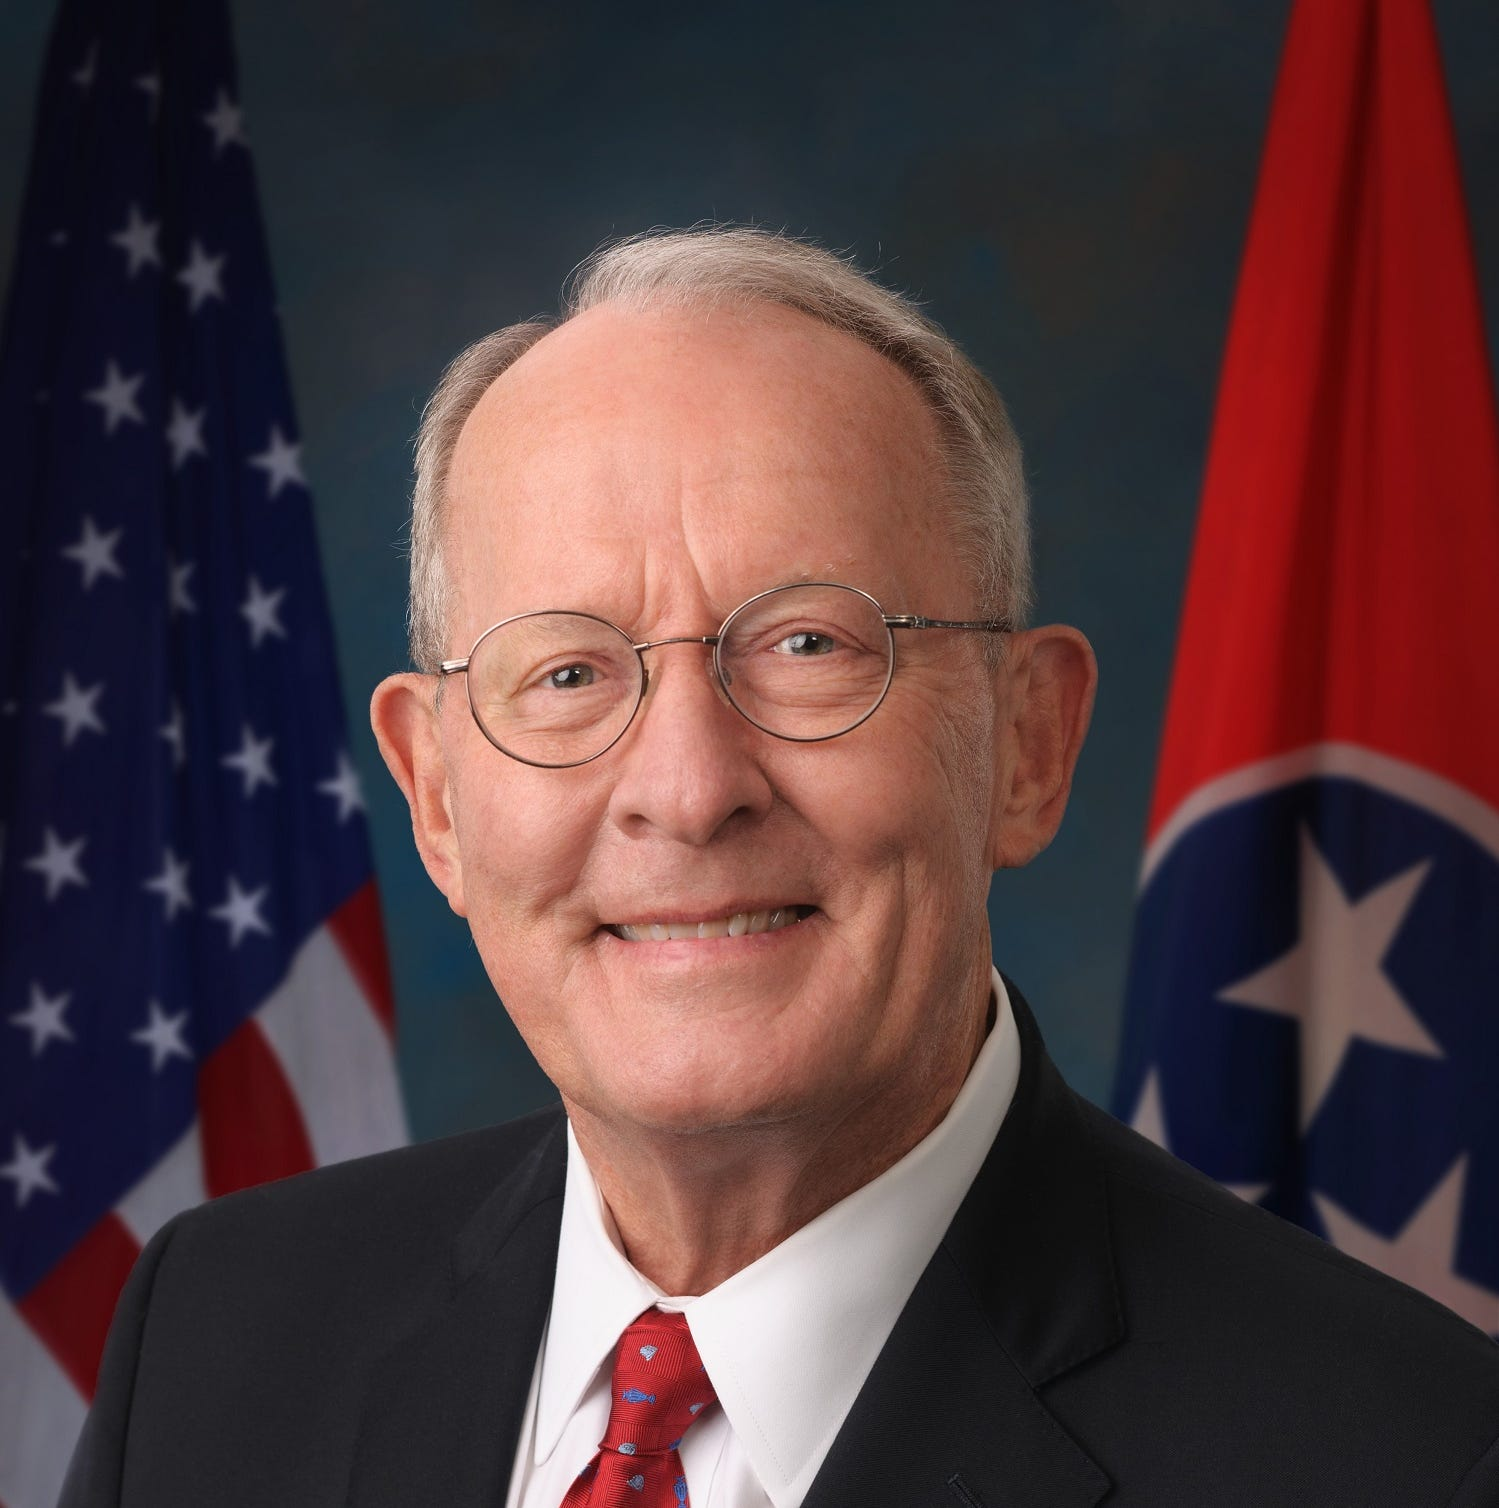 Tennessee Sen. Lamar Alexander says he'll vote against use of emergency funds for Trump's border wall